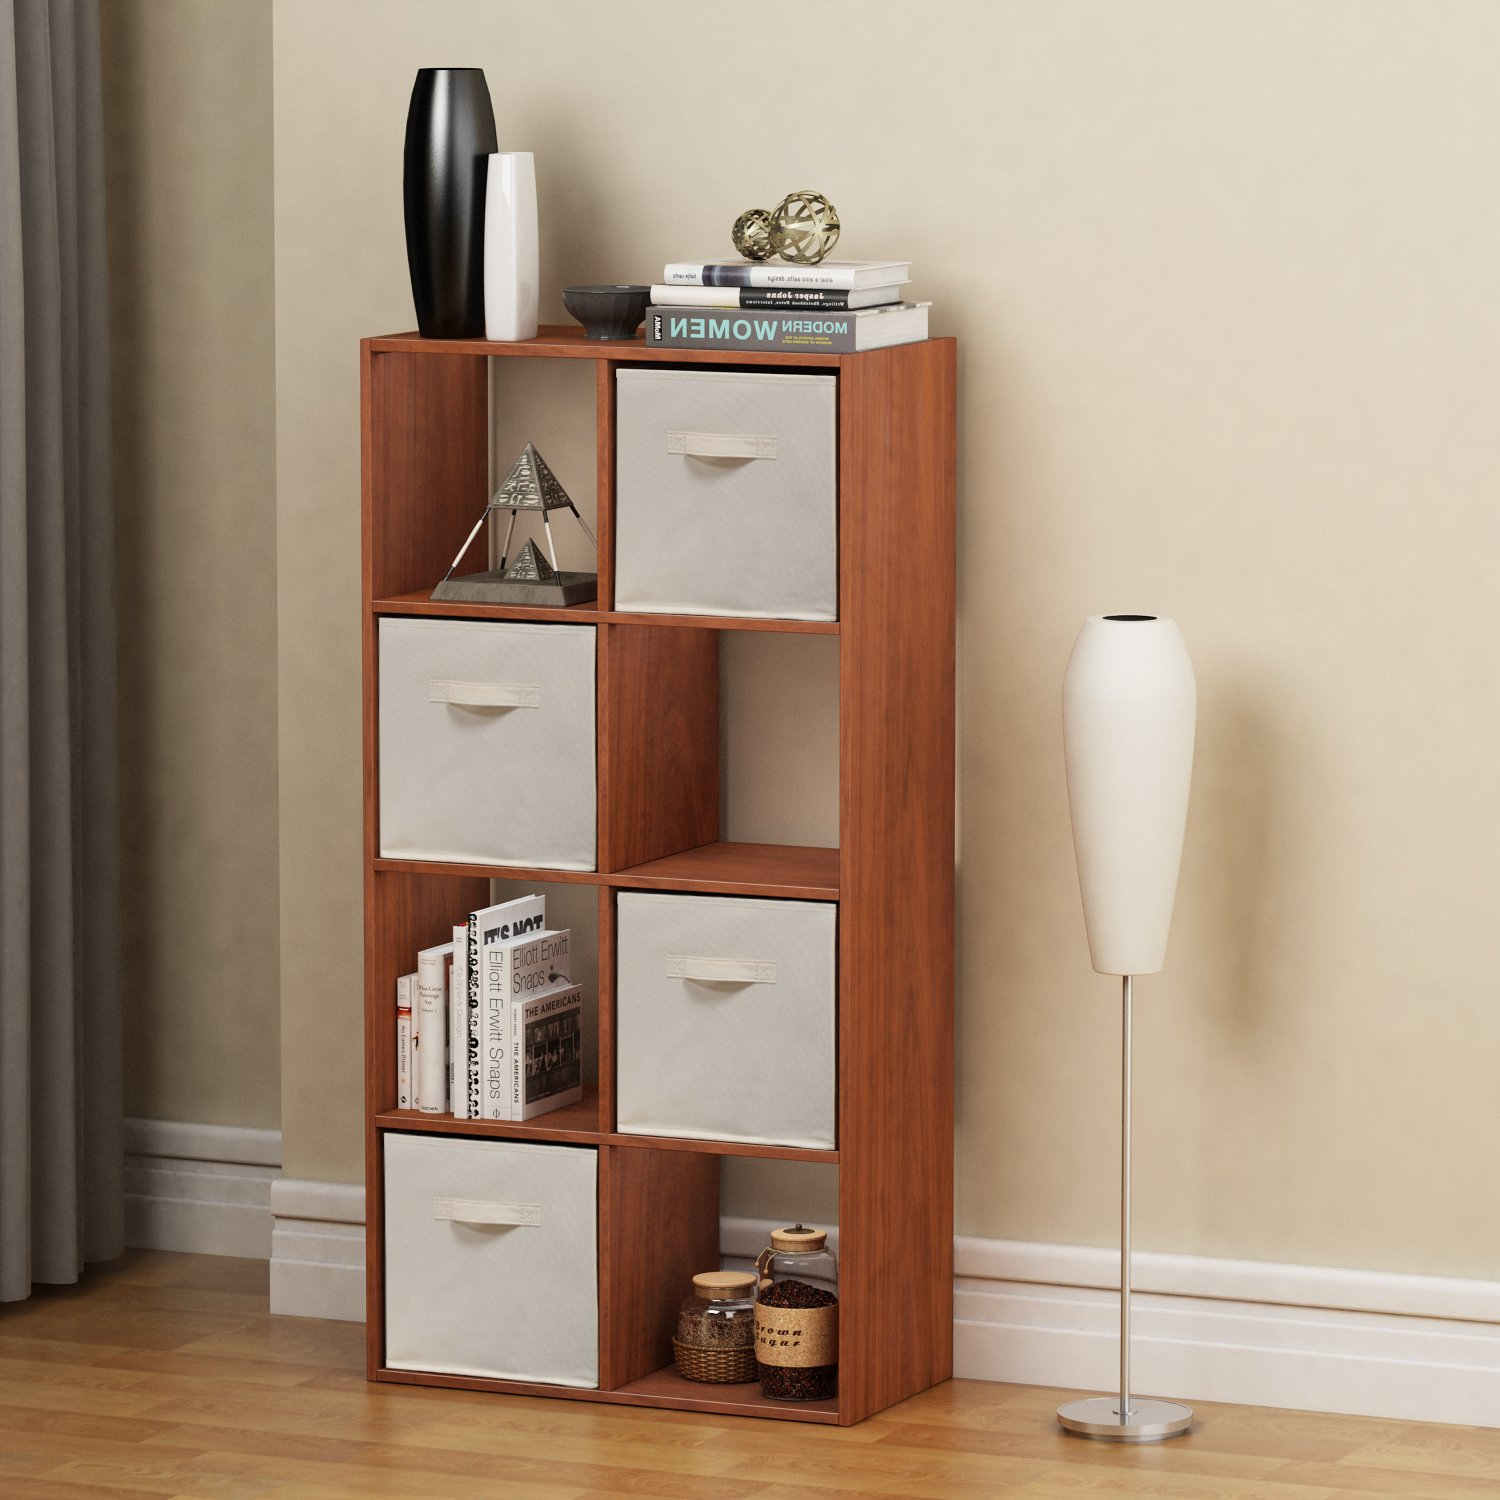 Homestar 8 Cube with Fabric Bins, Cherry Spice